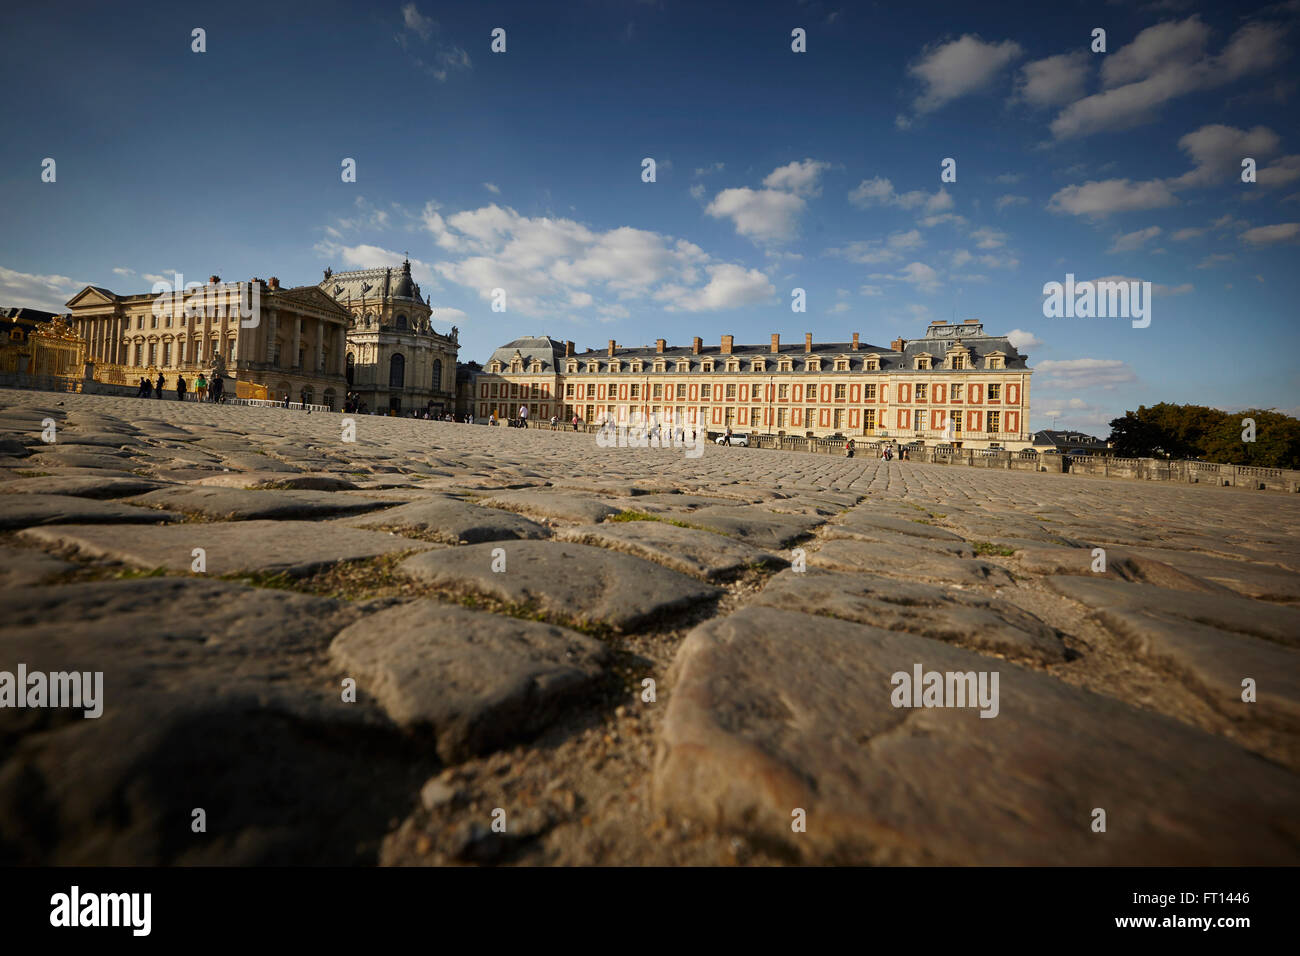 Palace of Versailles, Versailles near Paris, France - Stock Image